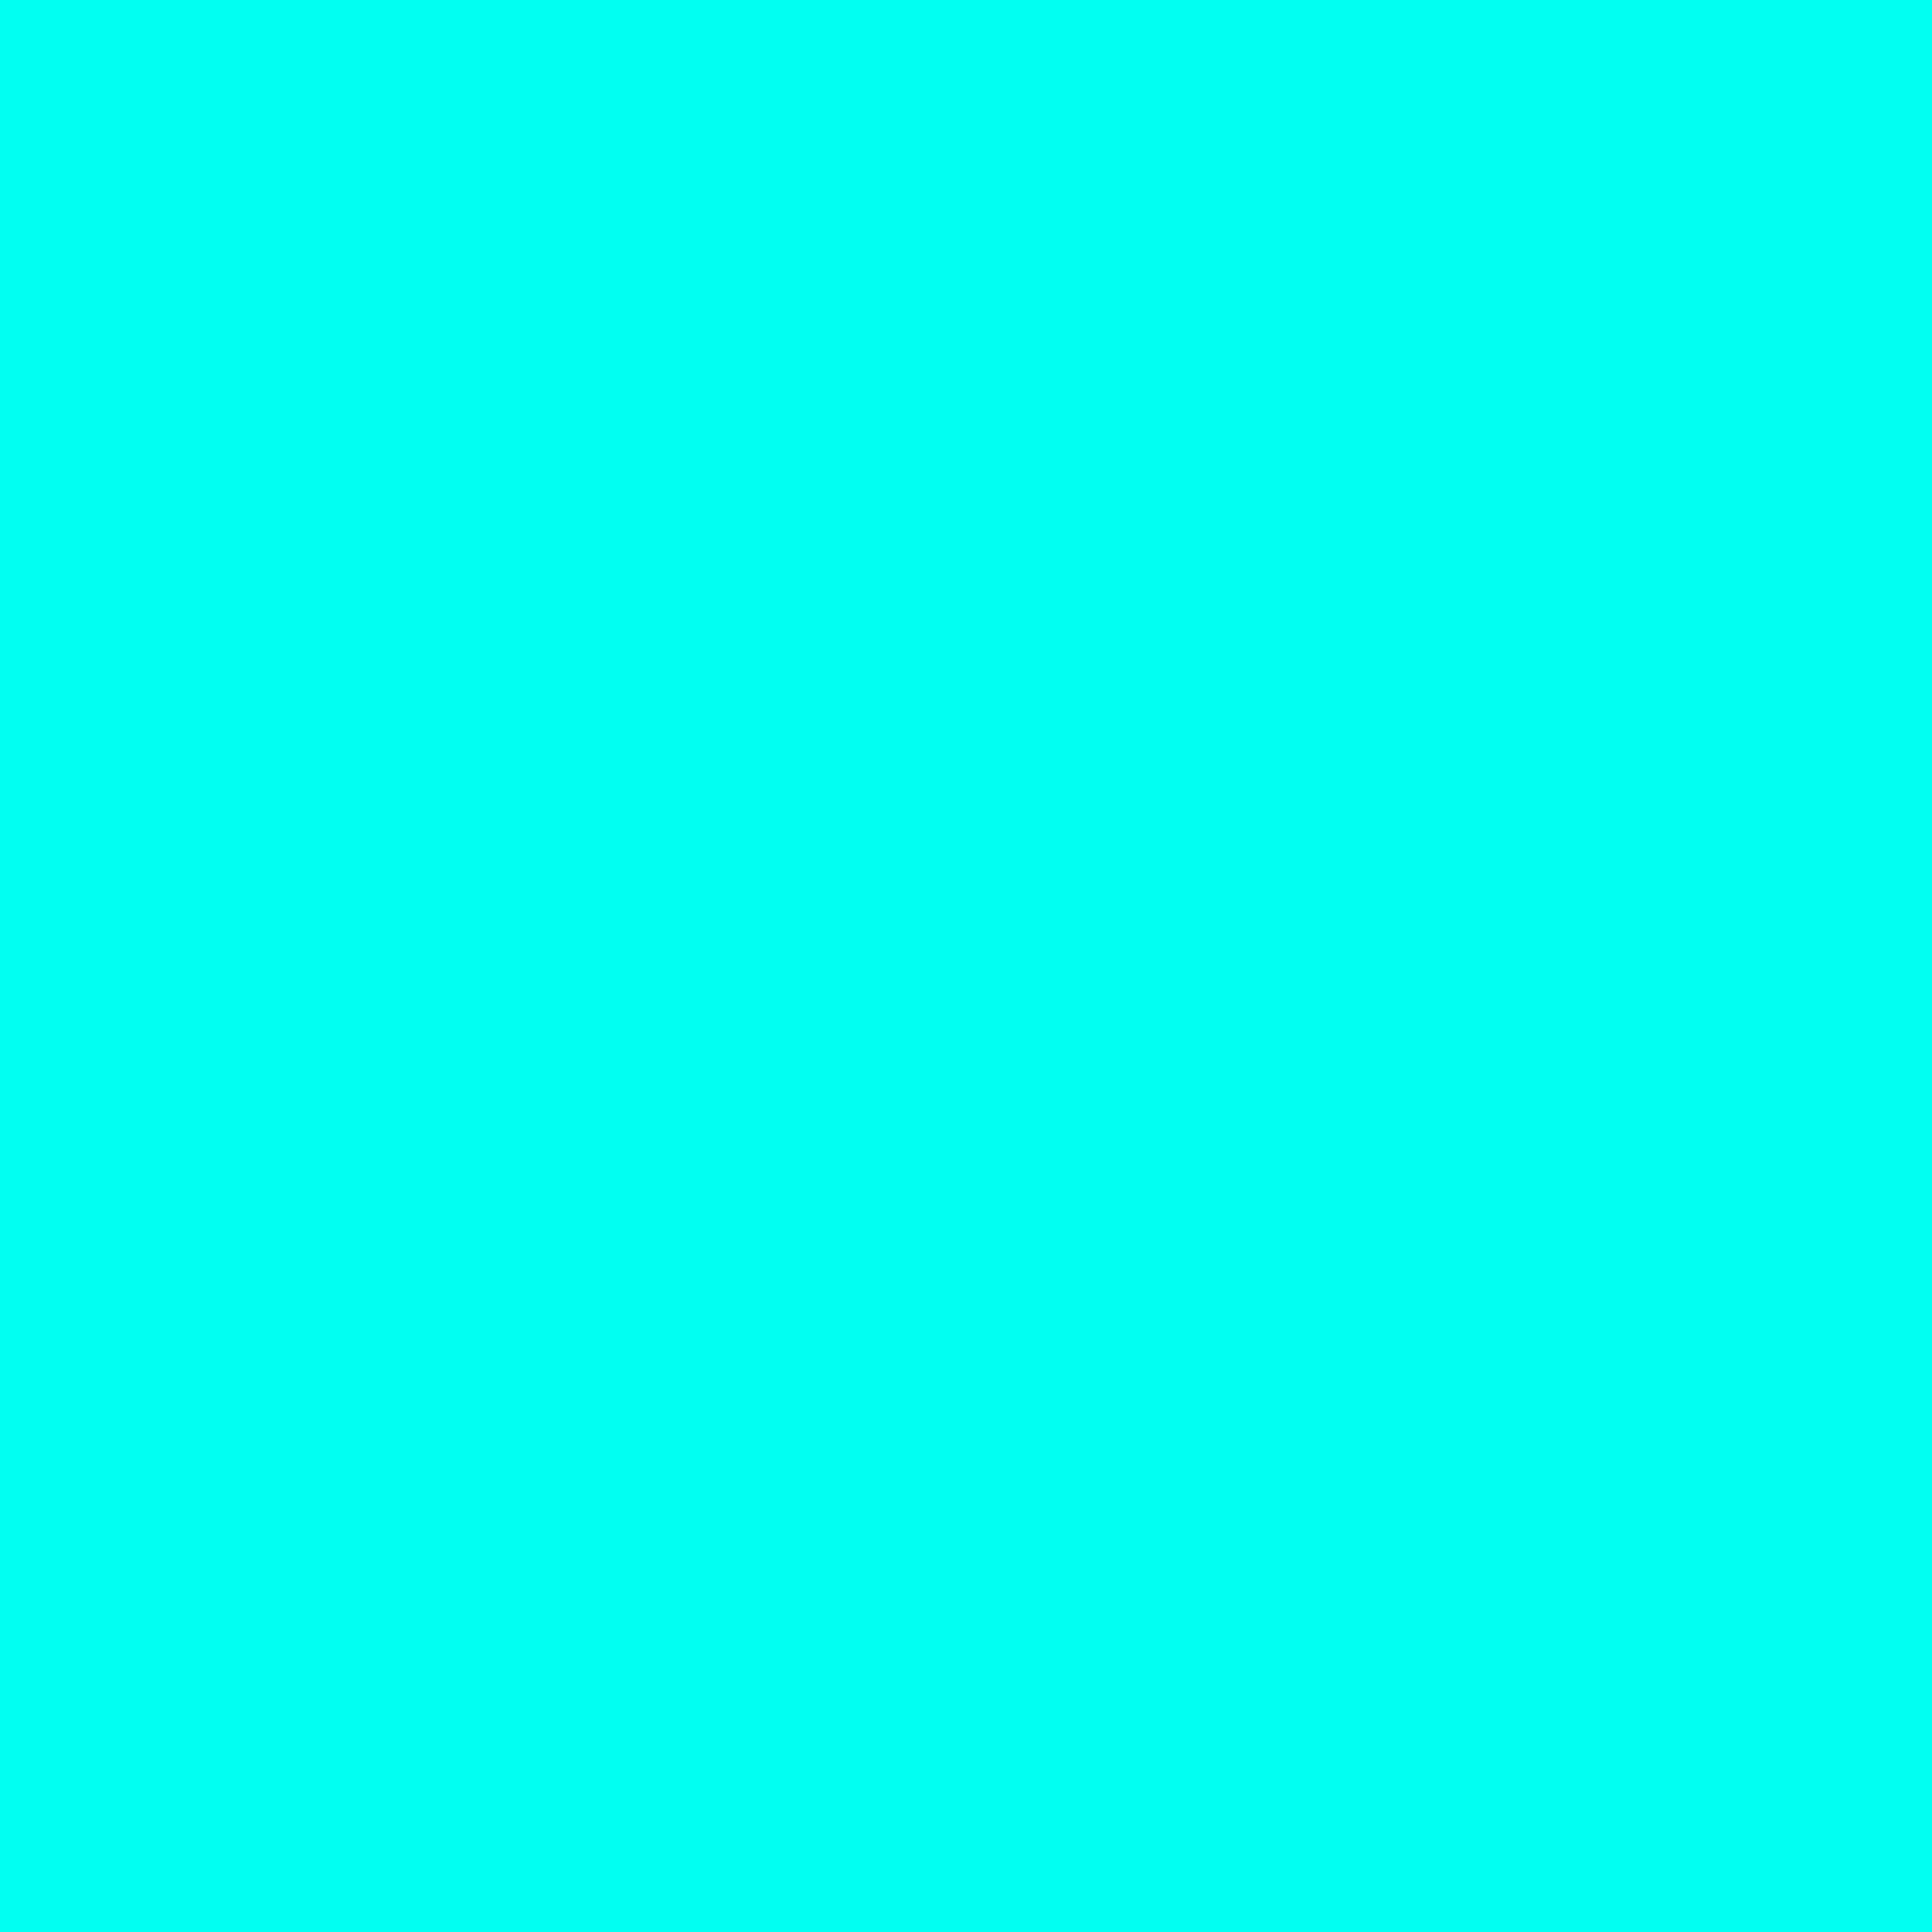 2048x2048 Turquoise Blue Solid Color Background